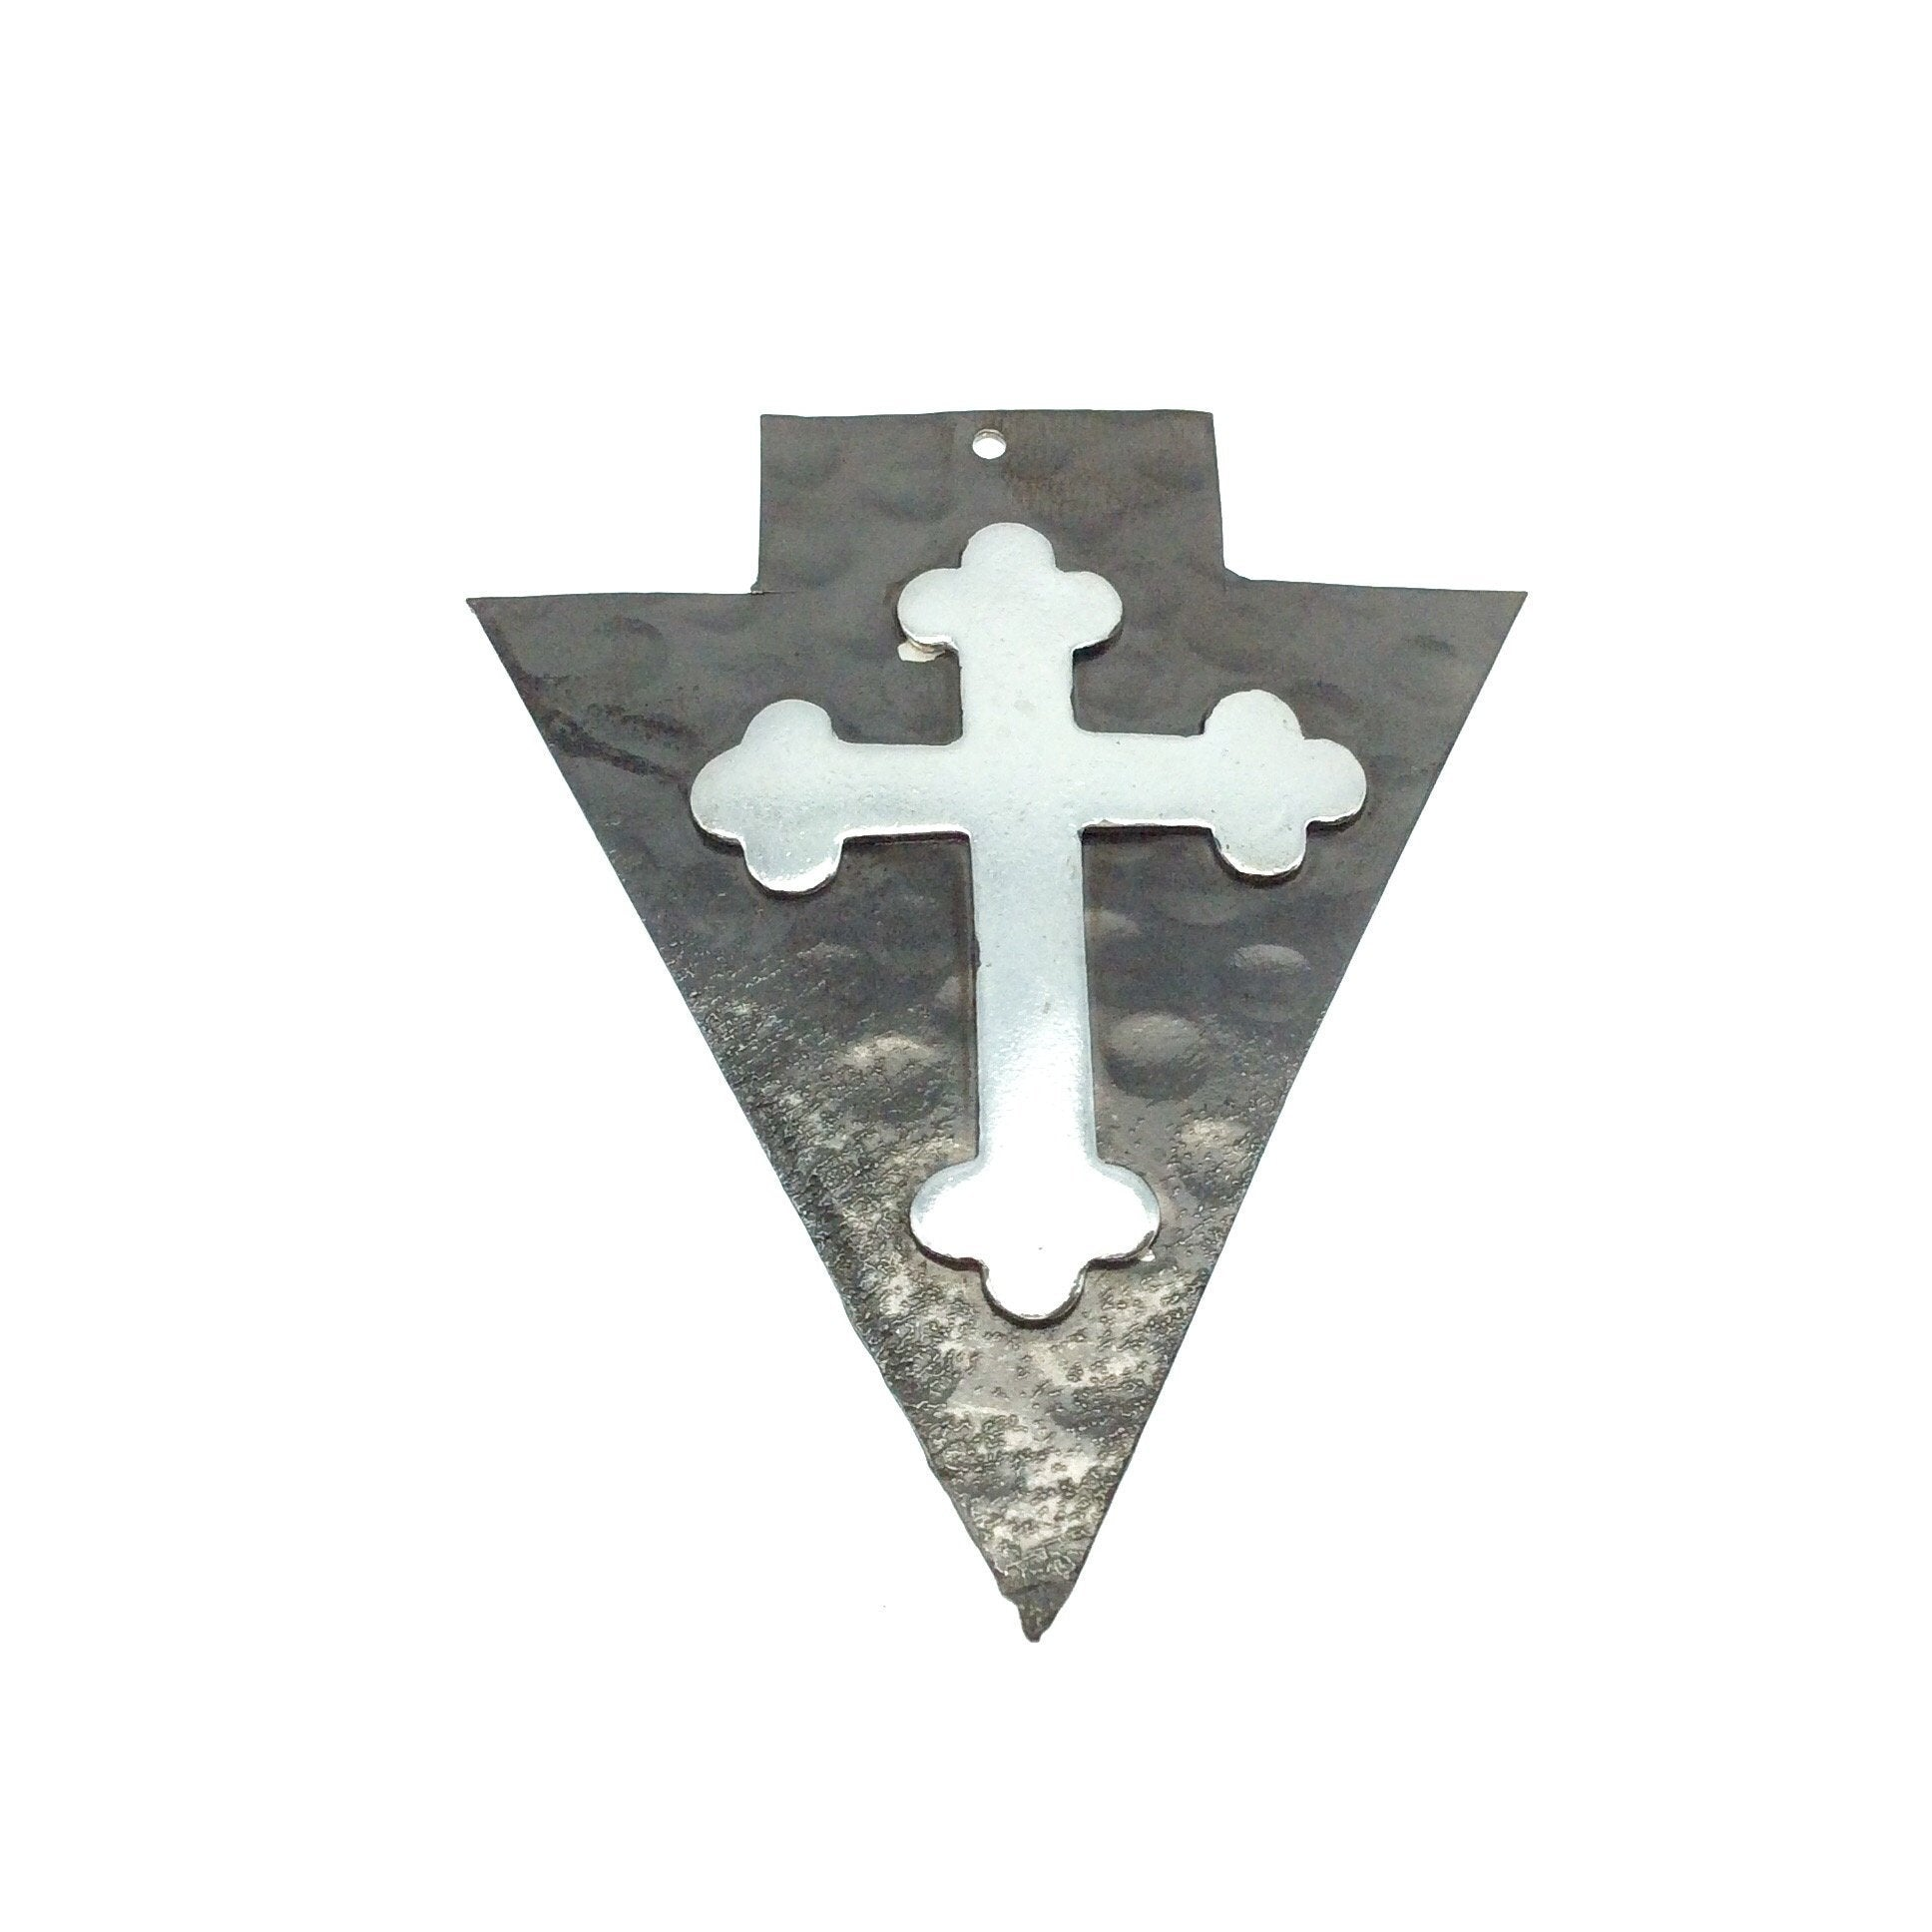 OOAK Rustic Shield Pendant Measuring 53mm x 63mm Gunmetal Plated Hammered Arrow Shape with Silver Plated Cross Embellishment